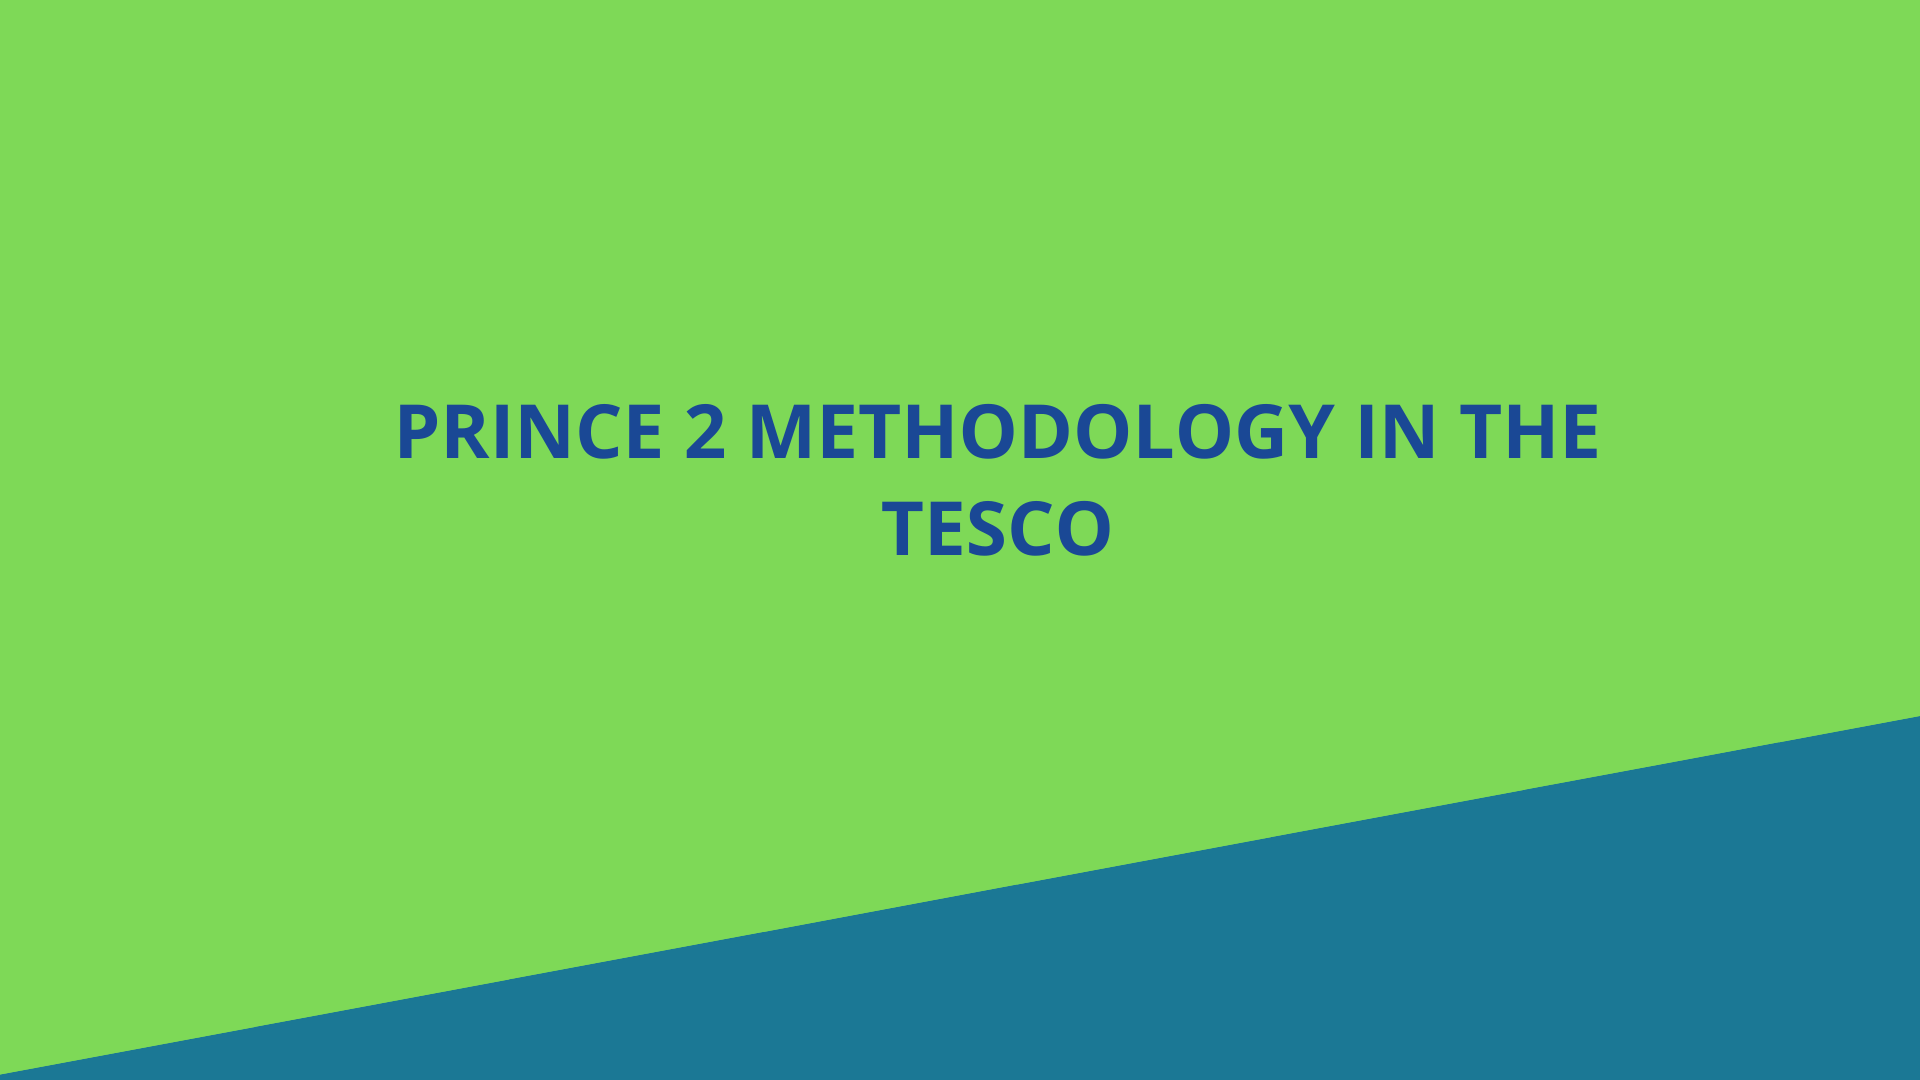 Project Management: PRINCE 2 in the Tesco